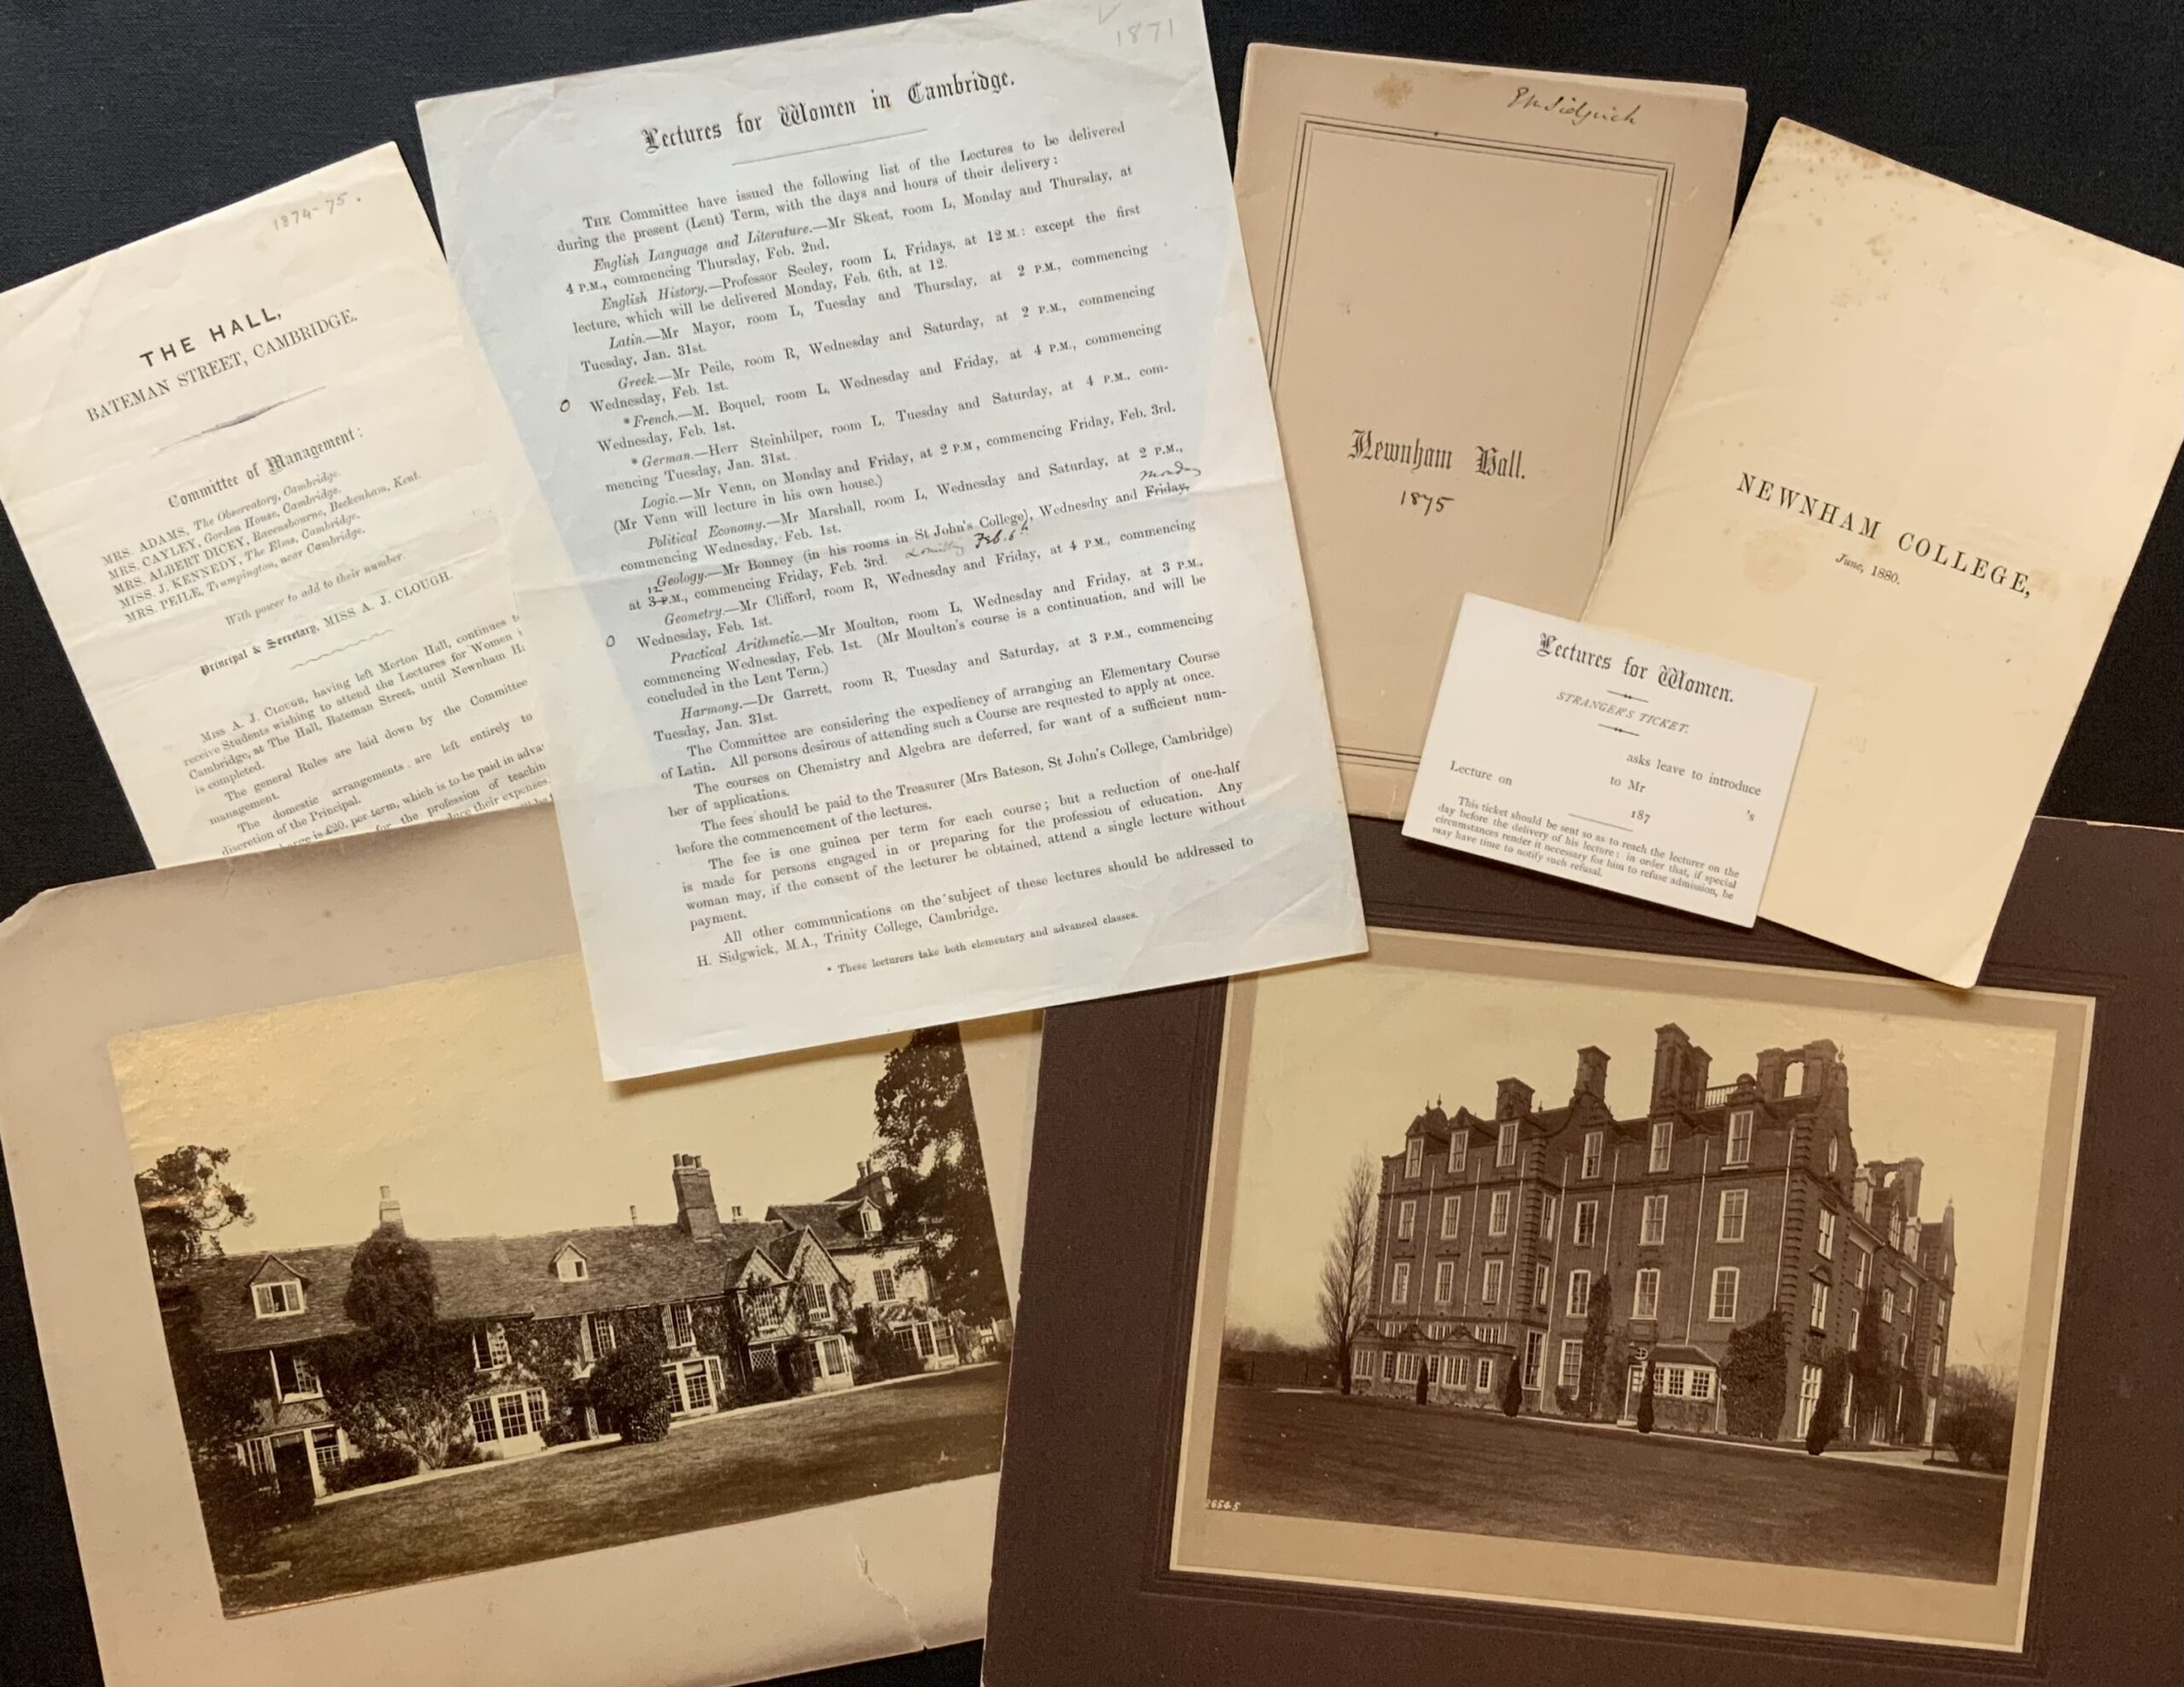 Archive documents and photographs from the 1870s